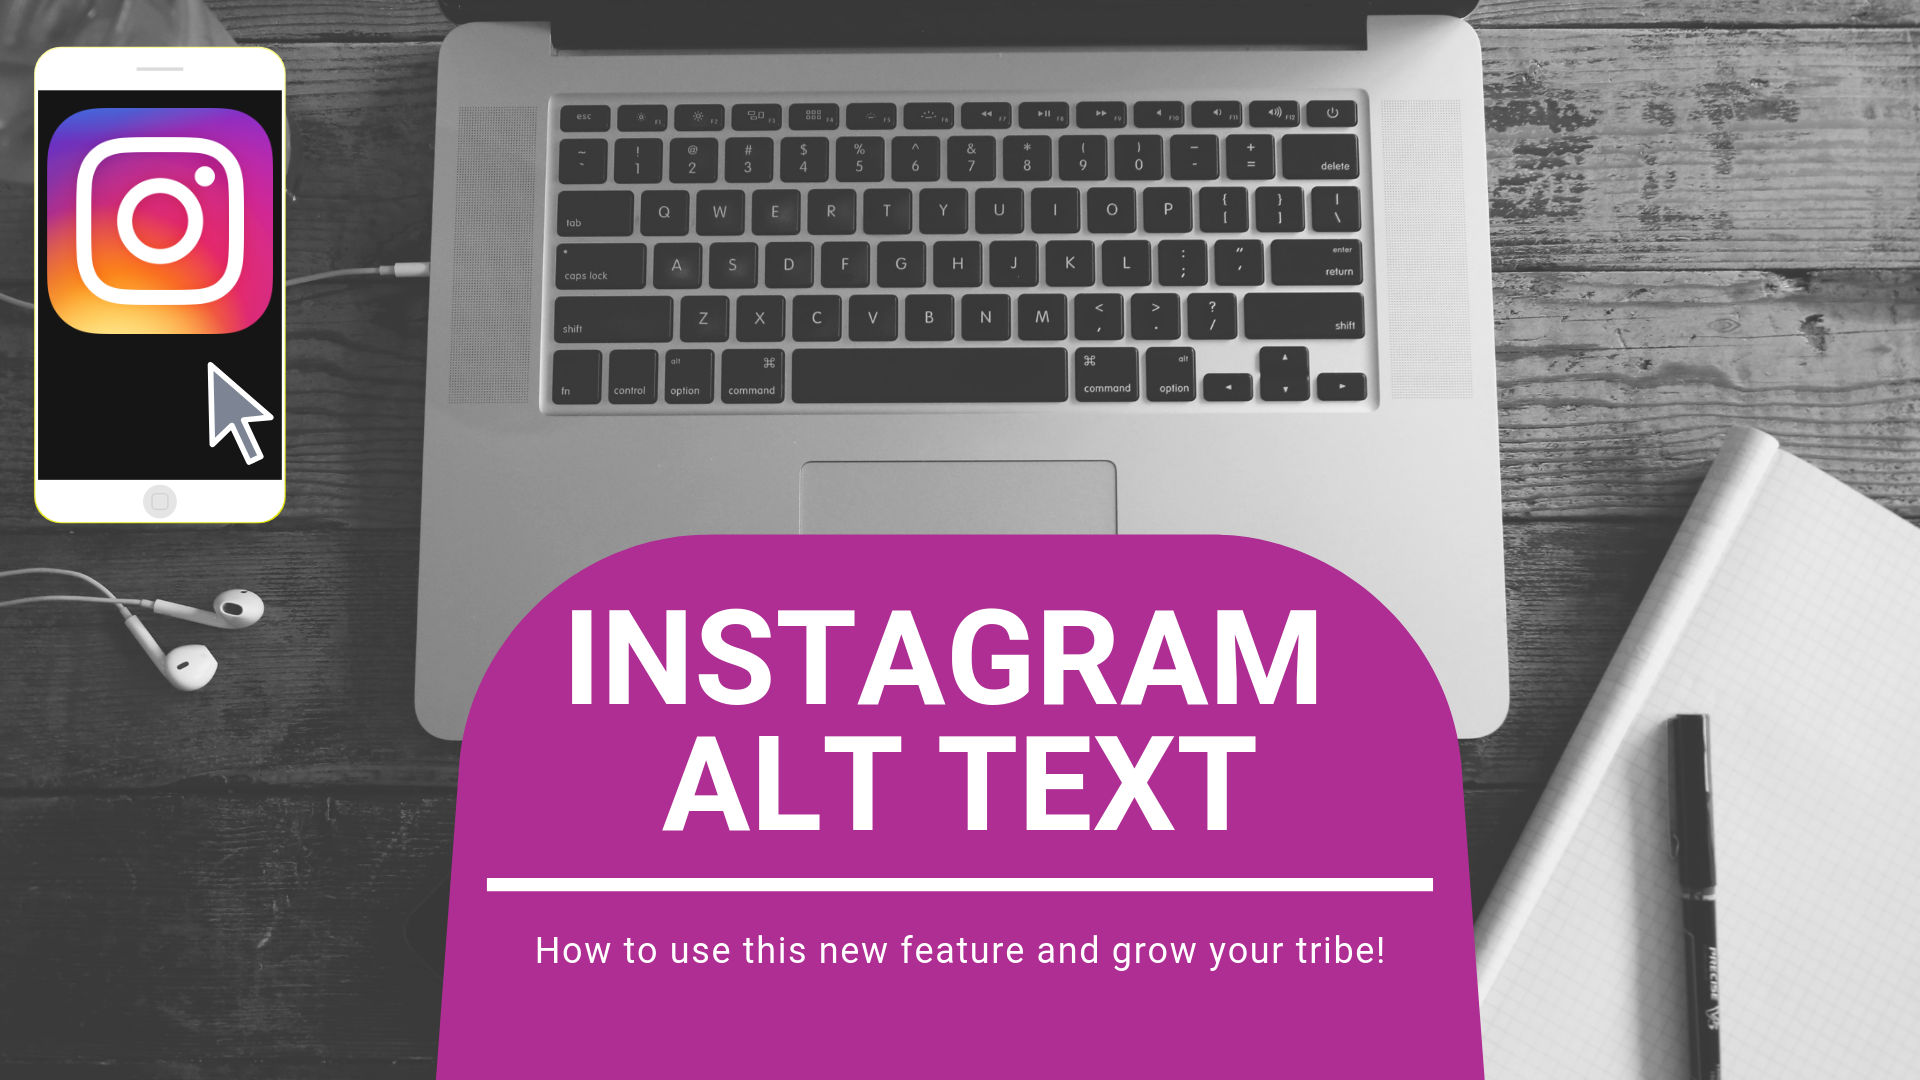 How To Use The New Instagram Alt Tag For Seo - The Startup - Medium